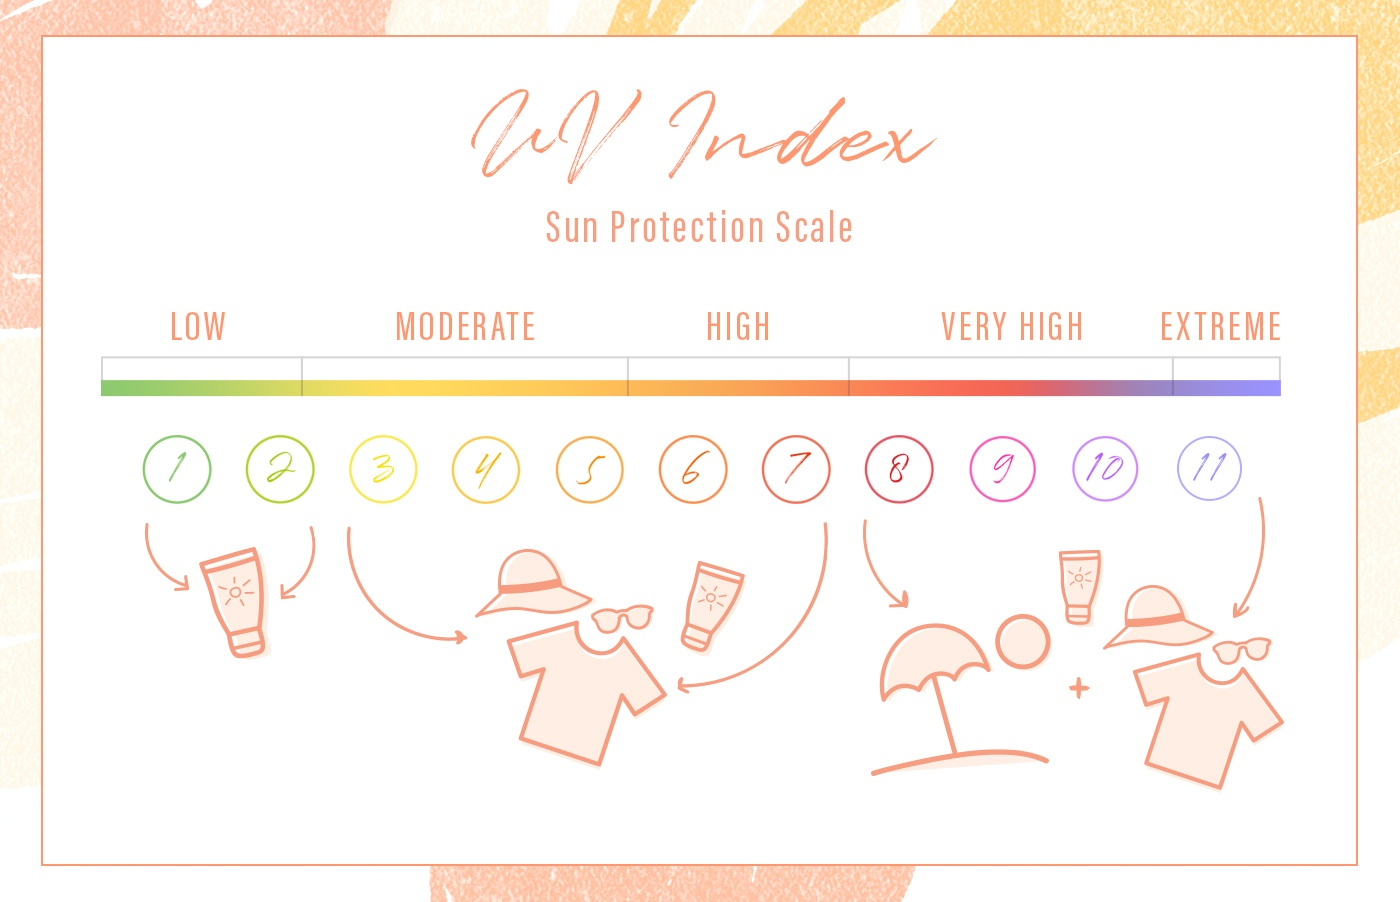 uv index guide